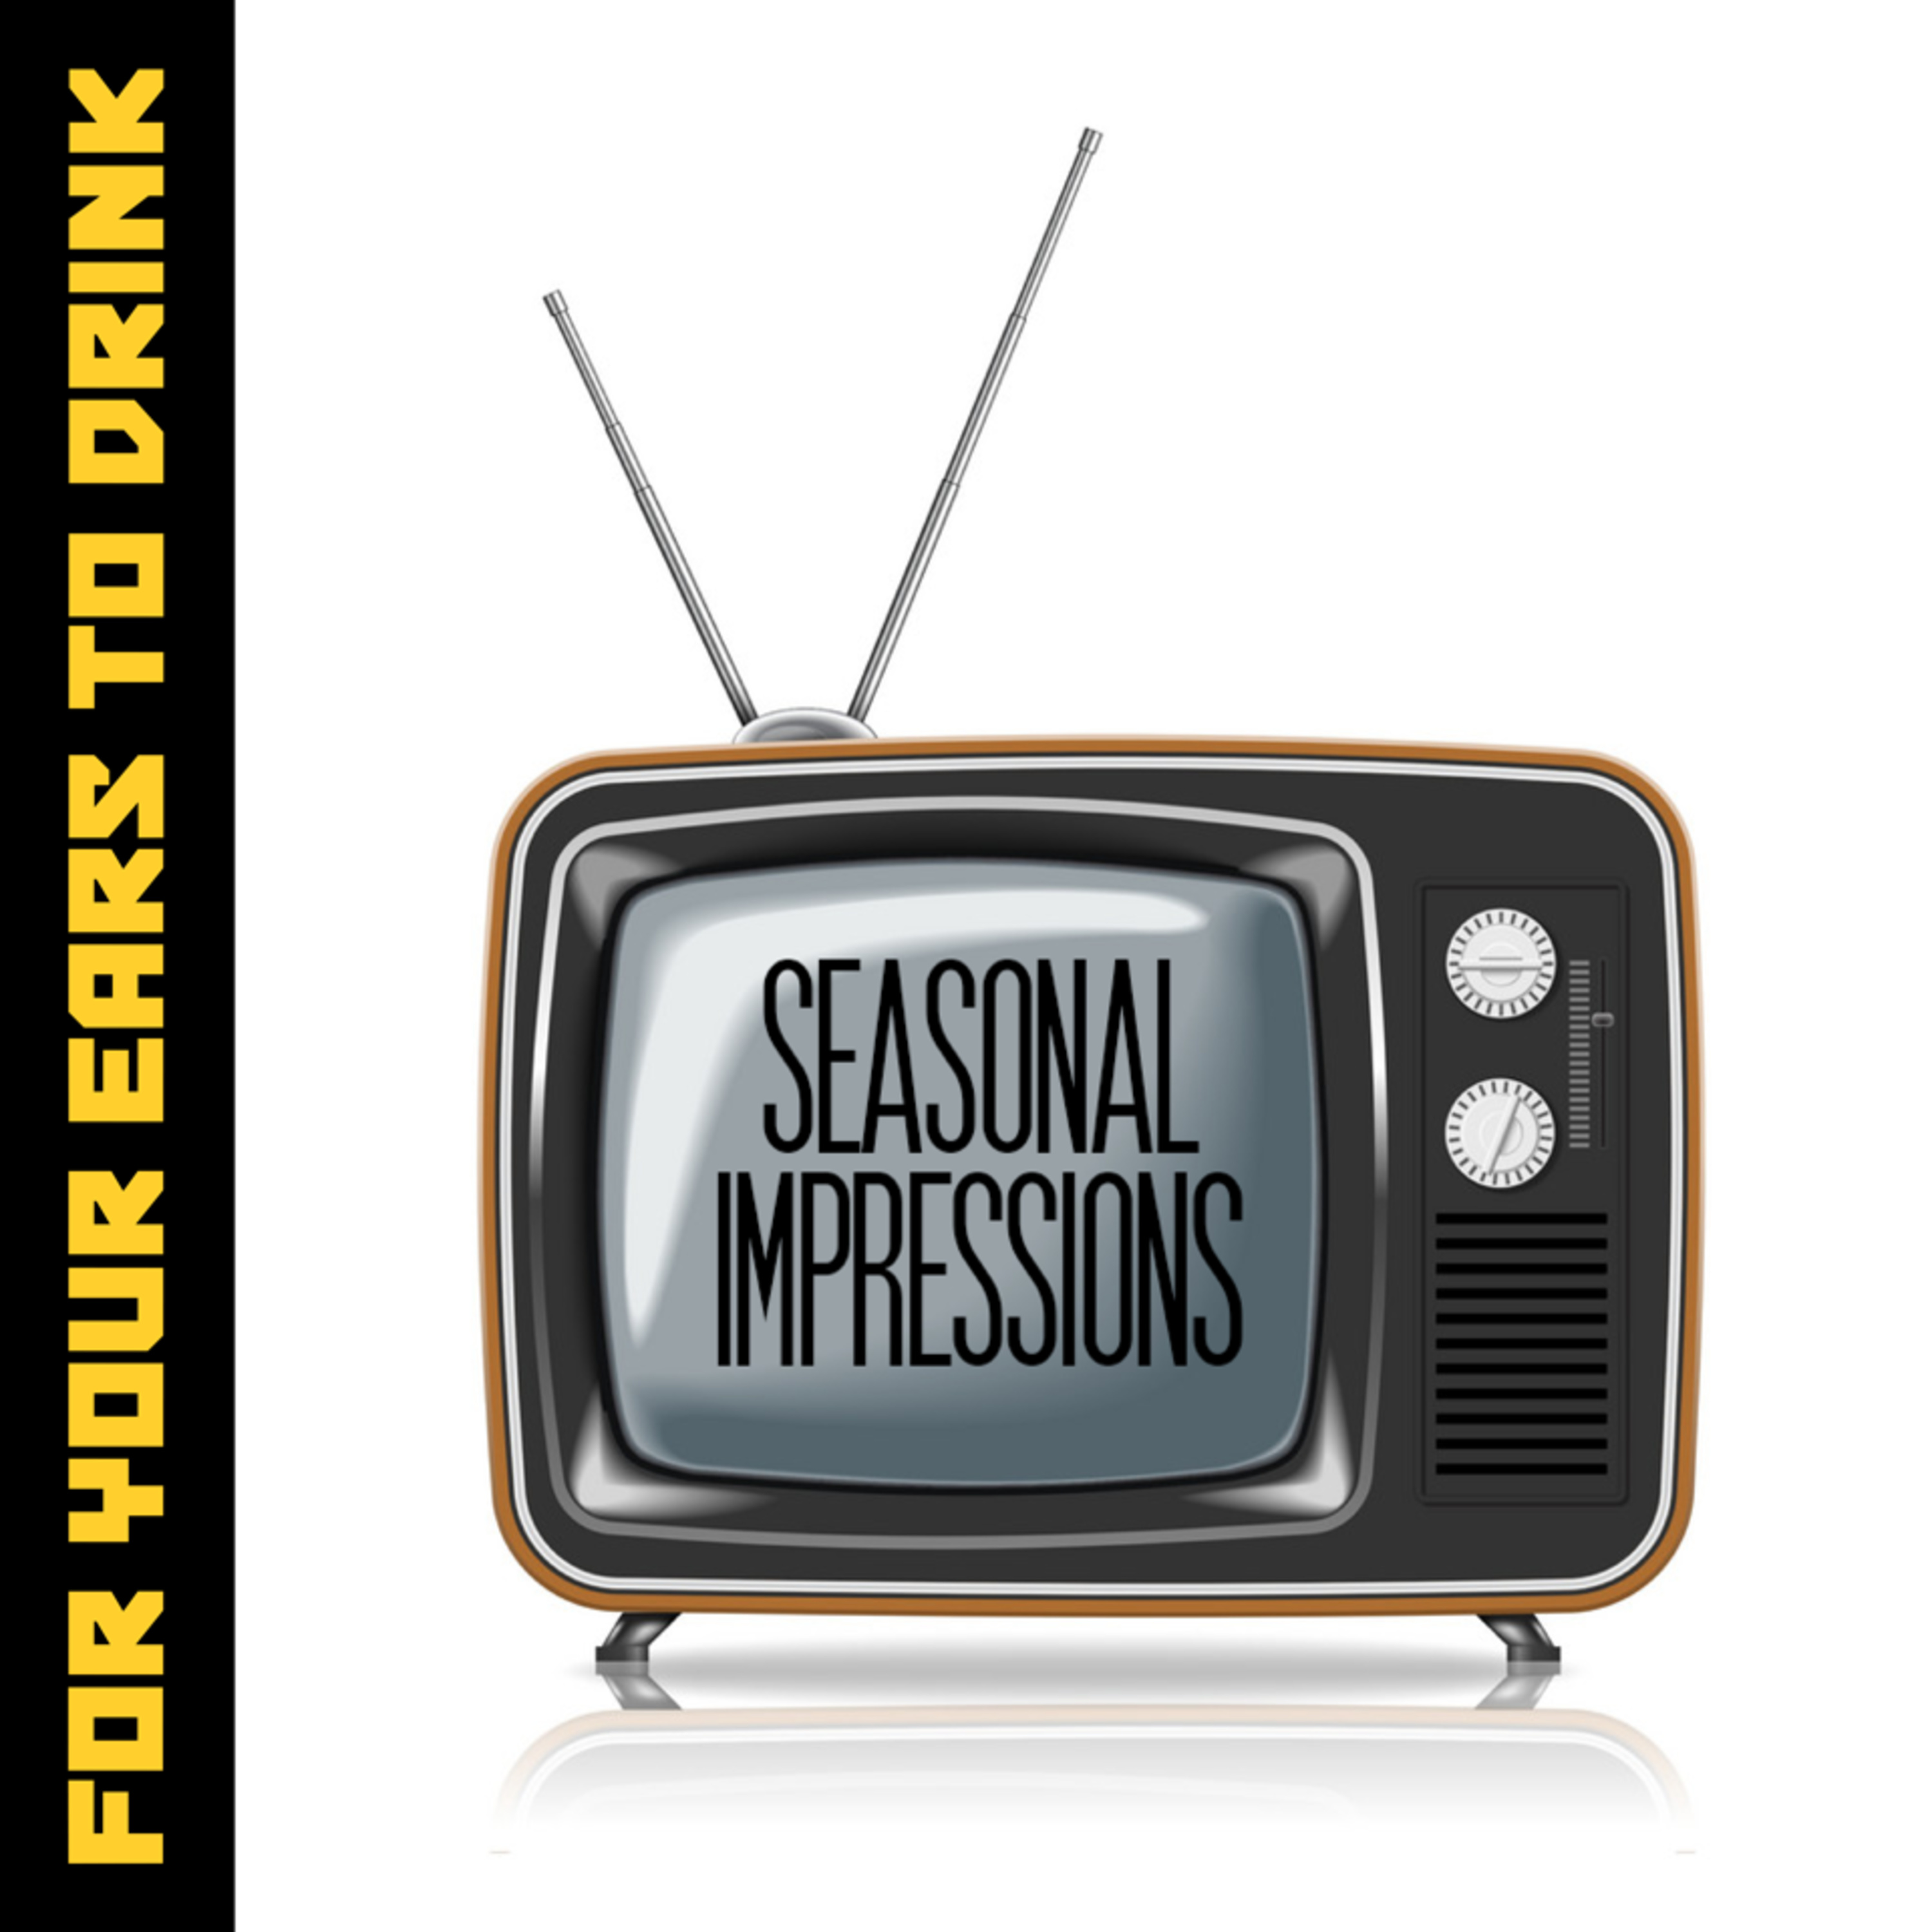 Seasonal Impressions - Episode 11: Game of Thrones Season 4 - Tyrion Lannister has had enough!